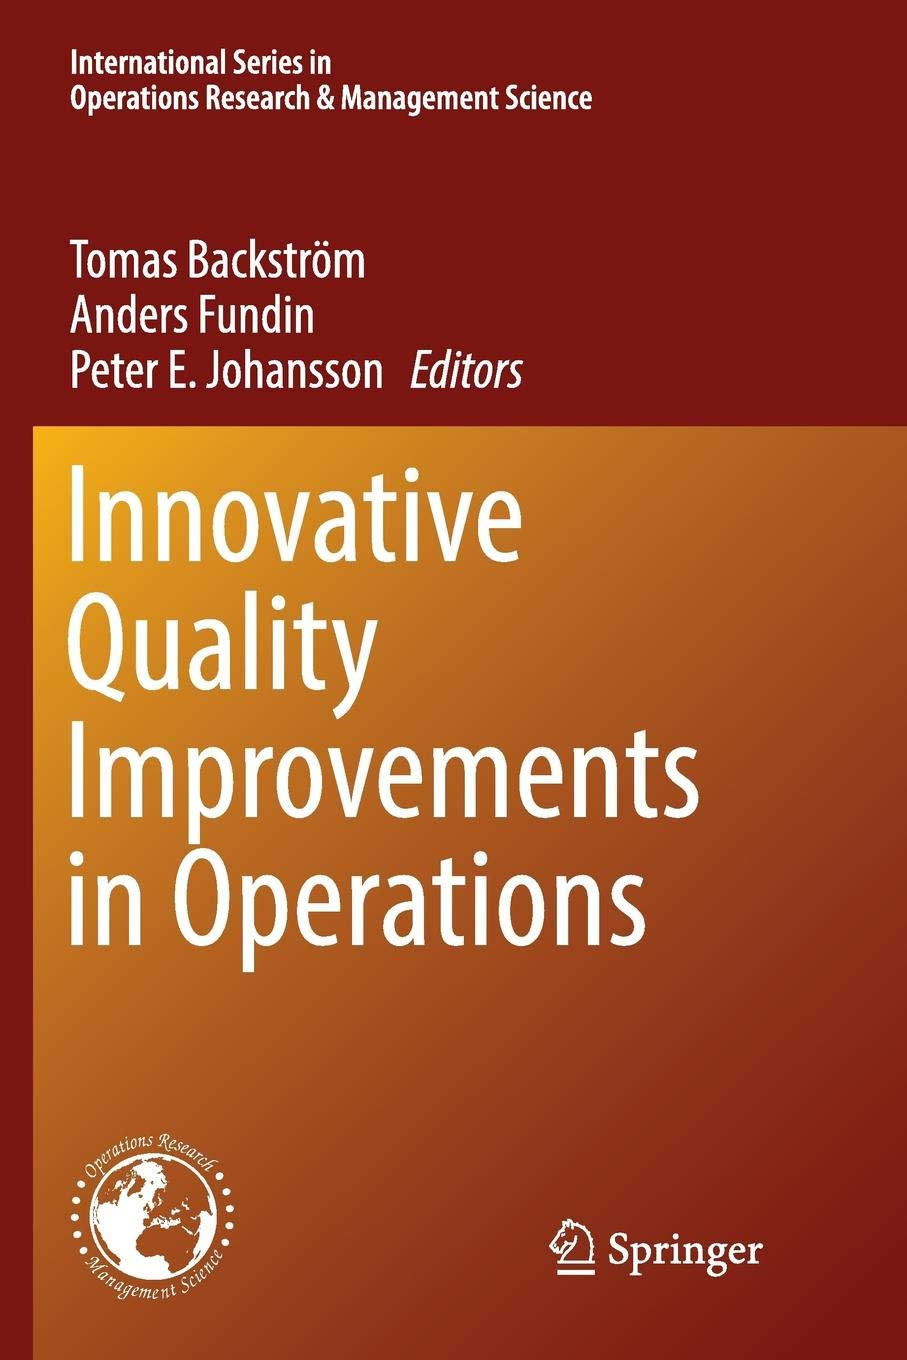 Innovative Quality Improvements in Operations: Introducing Emergent